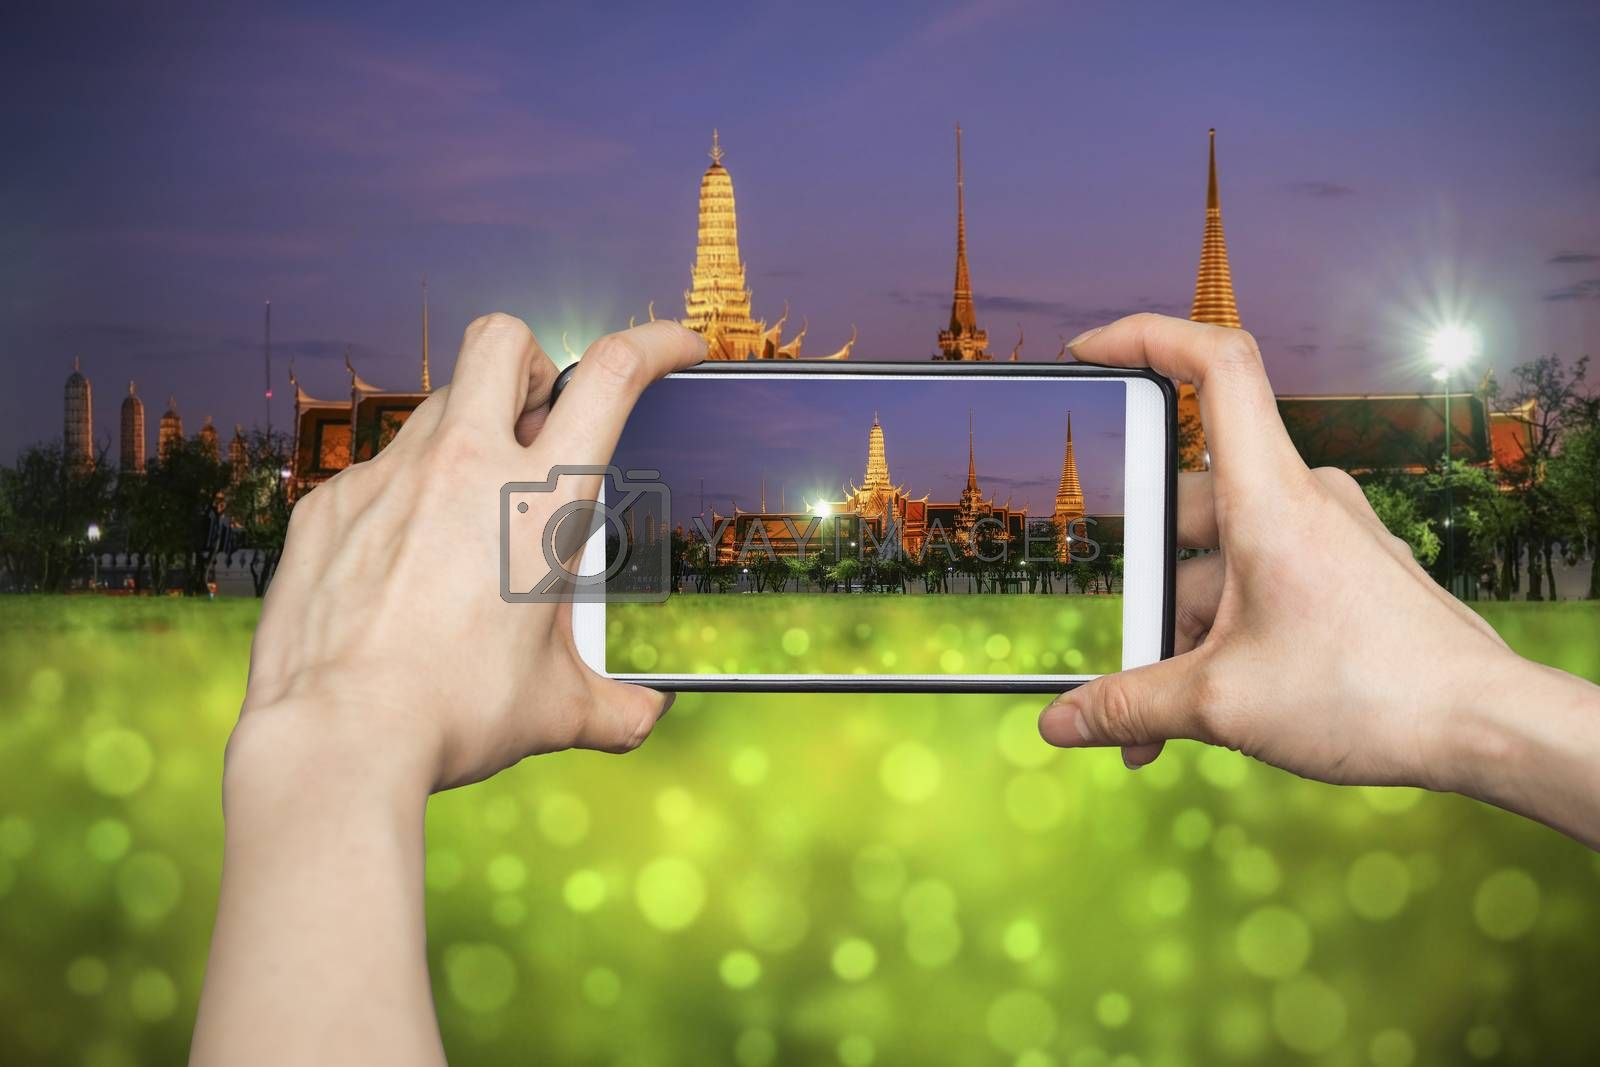 Taking pictures on mobile smart phone in Wat Phra Kaew (The Emerald Buddha) night view in Thailand